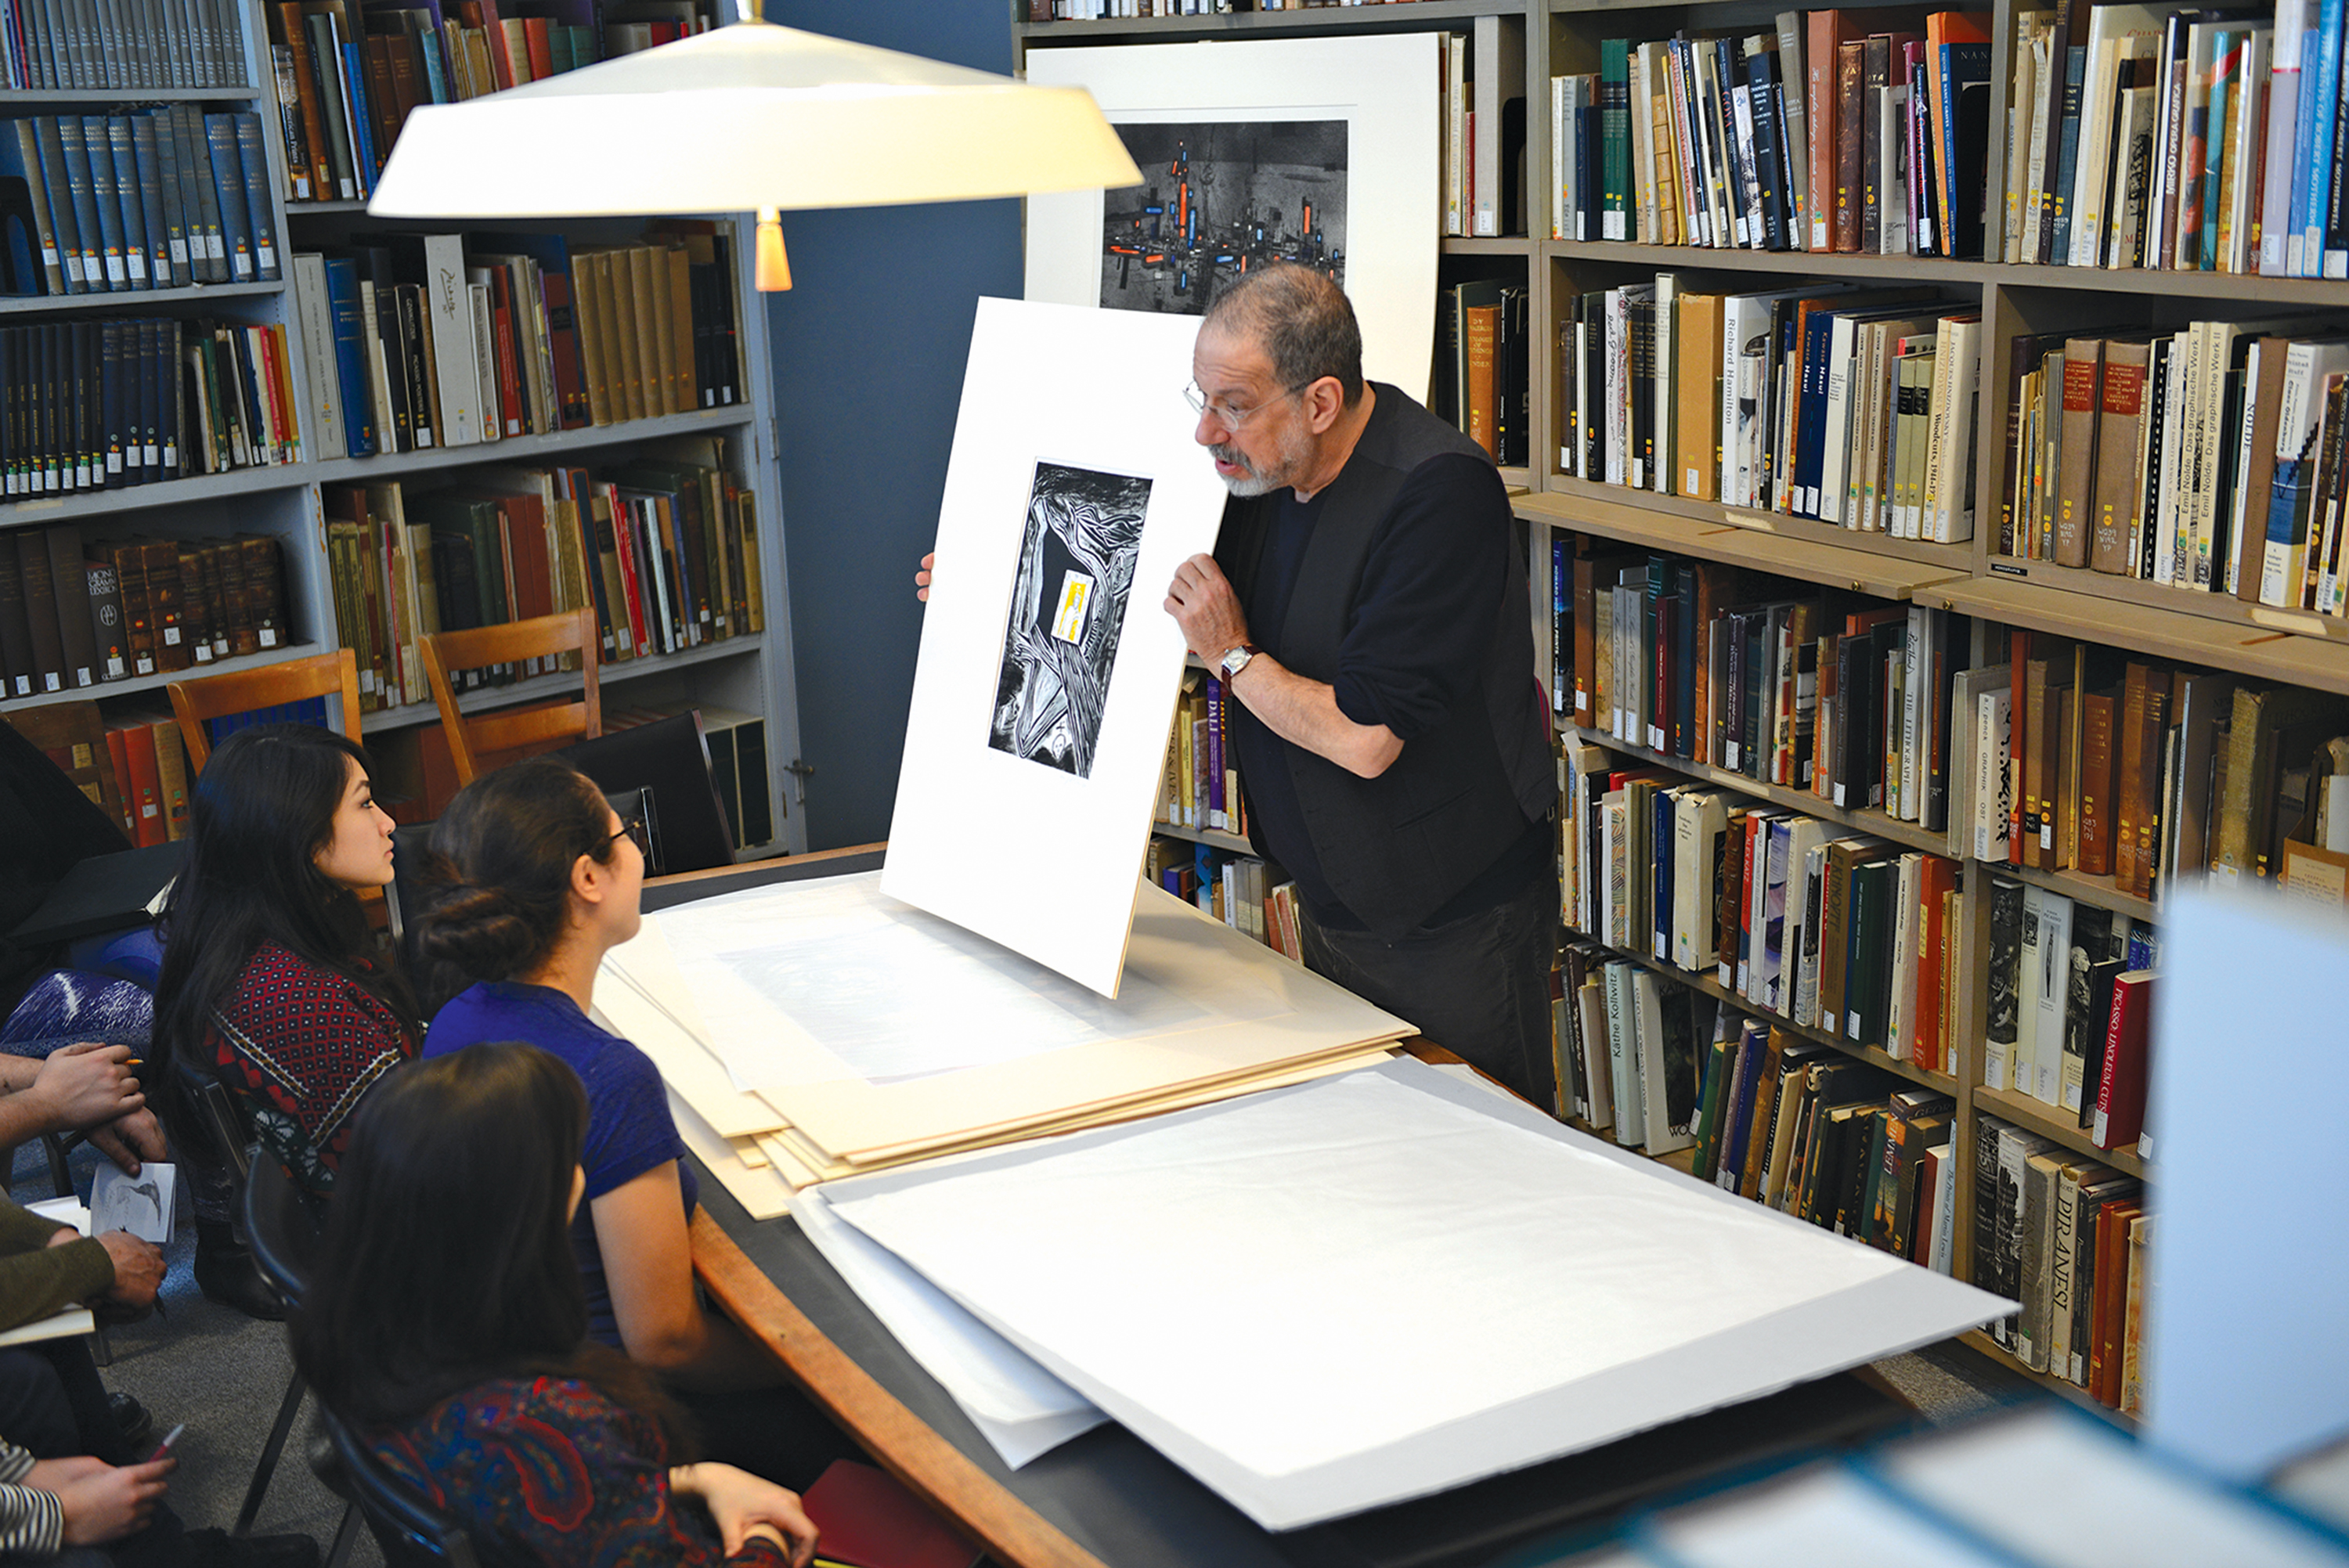 Professor of Art David Schorr makes use of the Davison Art Center's vast collection of prints to familiarize his students with the work and process of great artists who were printmakers.